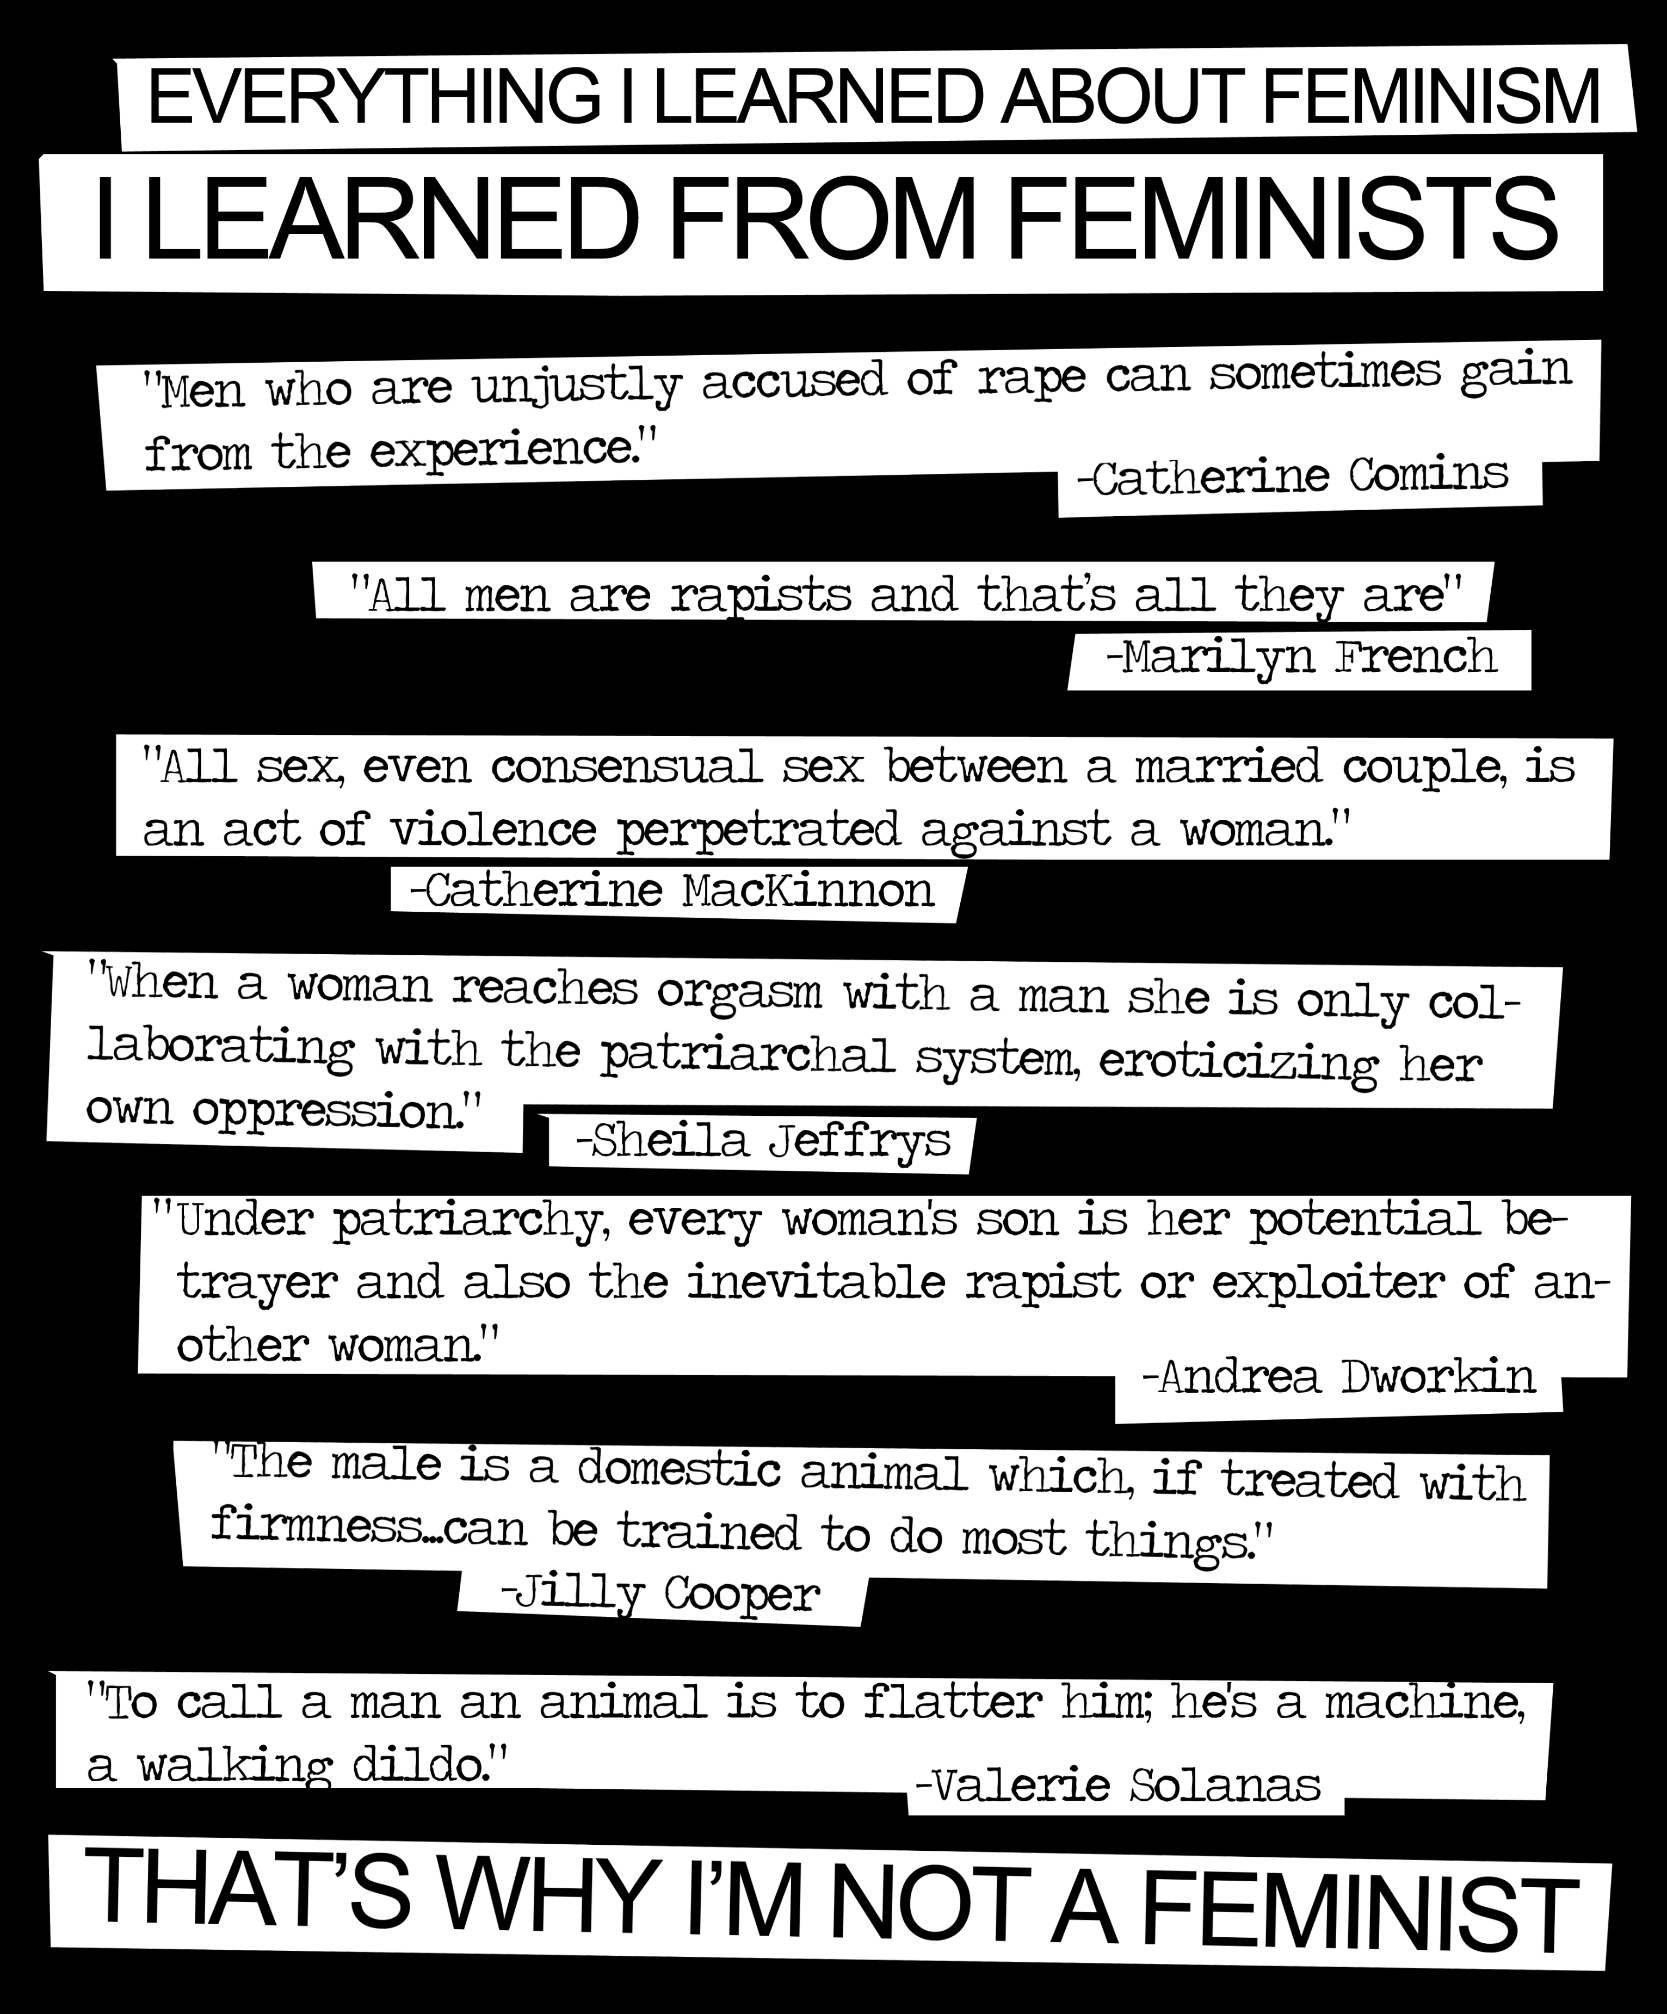 """Feminism Quotes from Feminists. . I LEARNED FROM FEMINISTS of rape can sometimes gain Men who are unjustly accused from the experience."""" Catherine mm All men ar"""